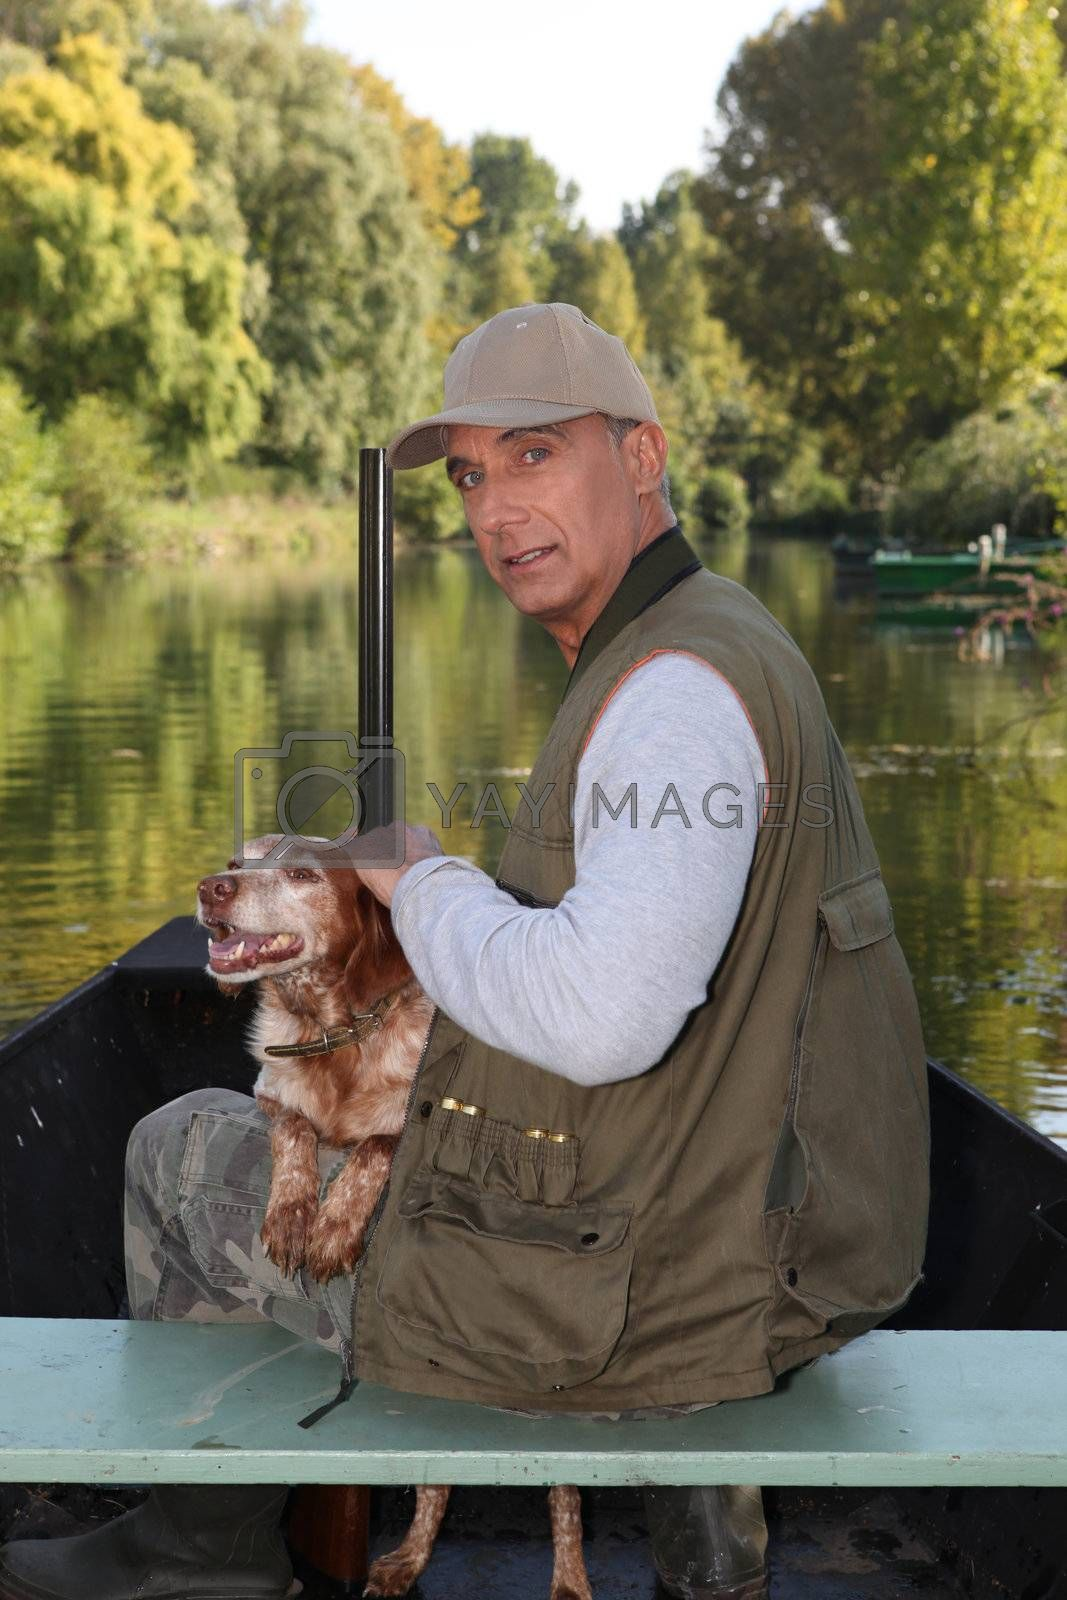 Hunter on a boat with his dog